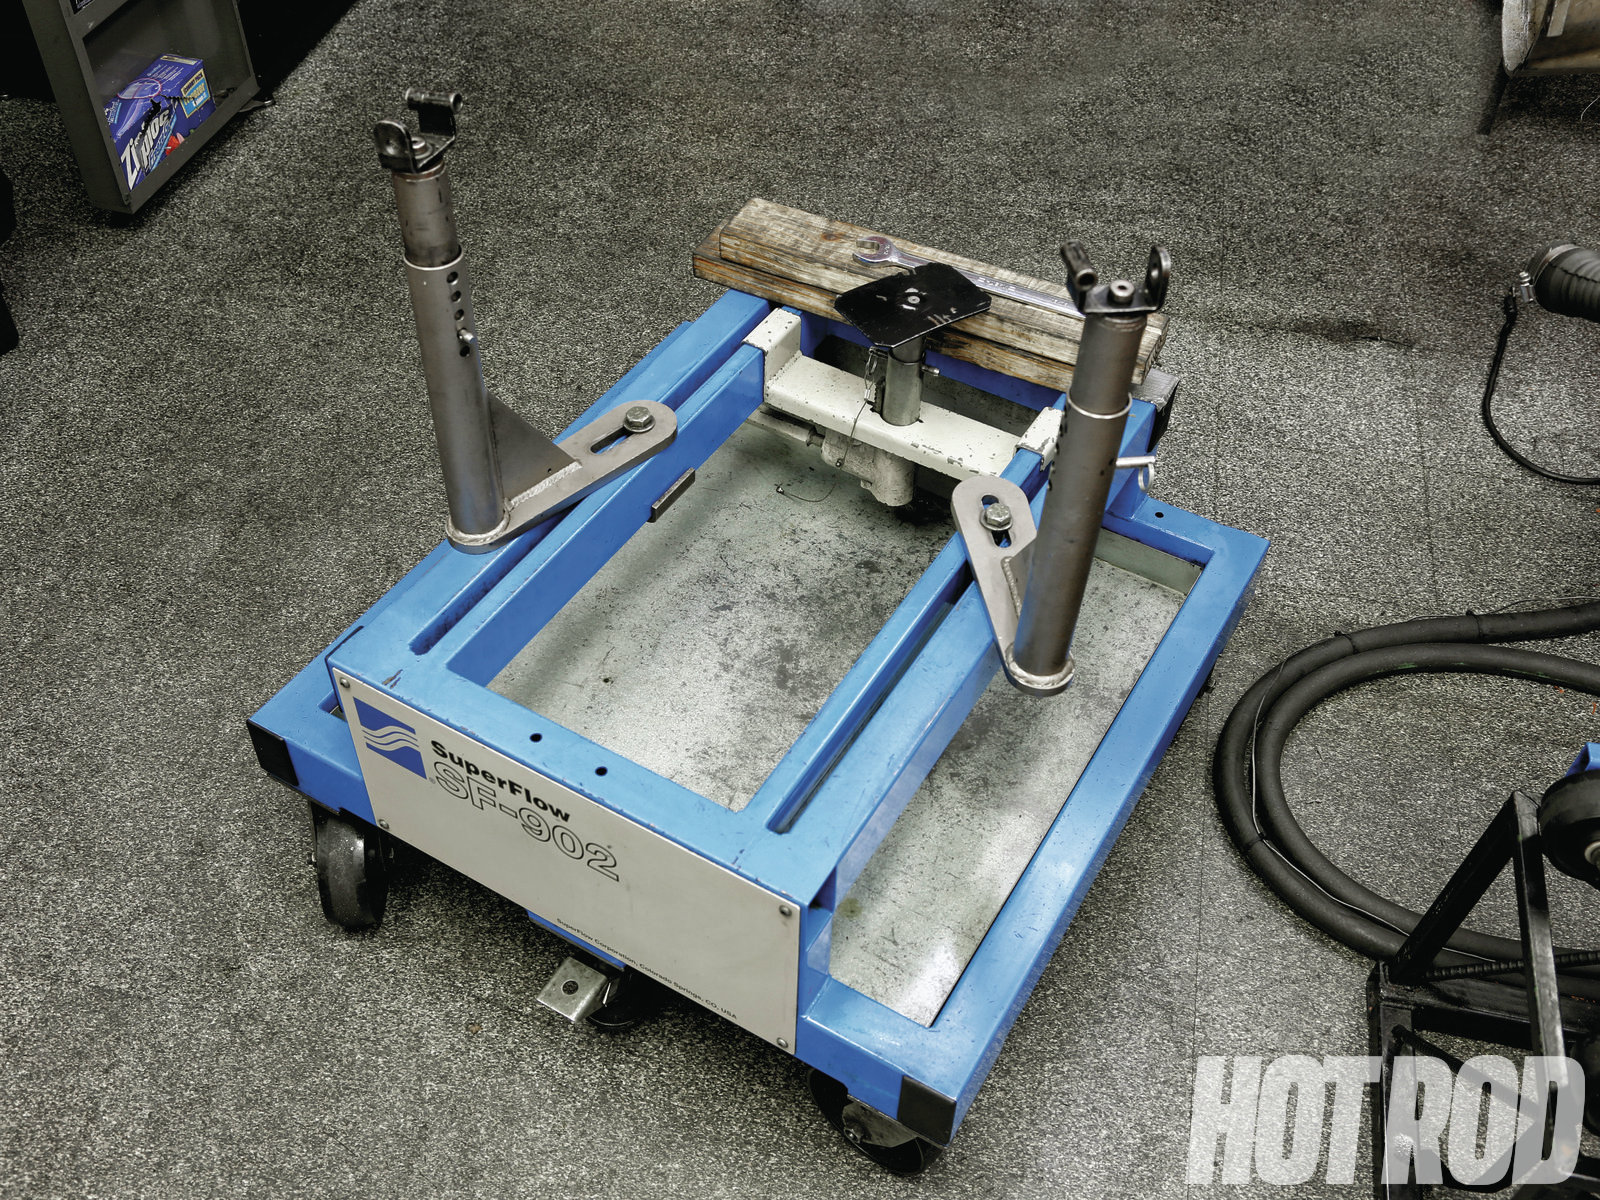 [01] During dyno testing, a docking cart supports the engine and positions it in front of the water brake. The cart's two side stands attach to the motor mounts and can easily be adjusted for width and height. A third stand supports the rear of the oil pan and adjusts the front-to-rear pitch of the engine. Heavy-duty casters allow rolling around an engine with ease.